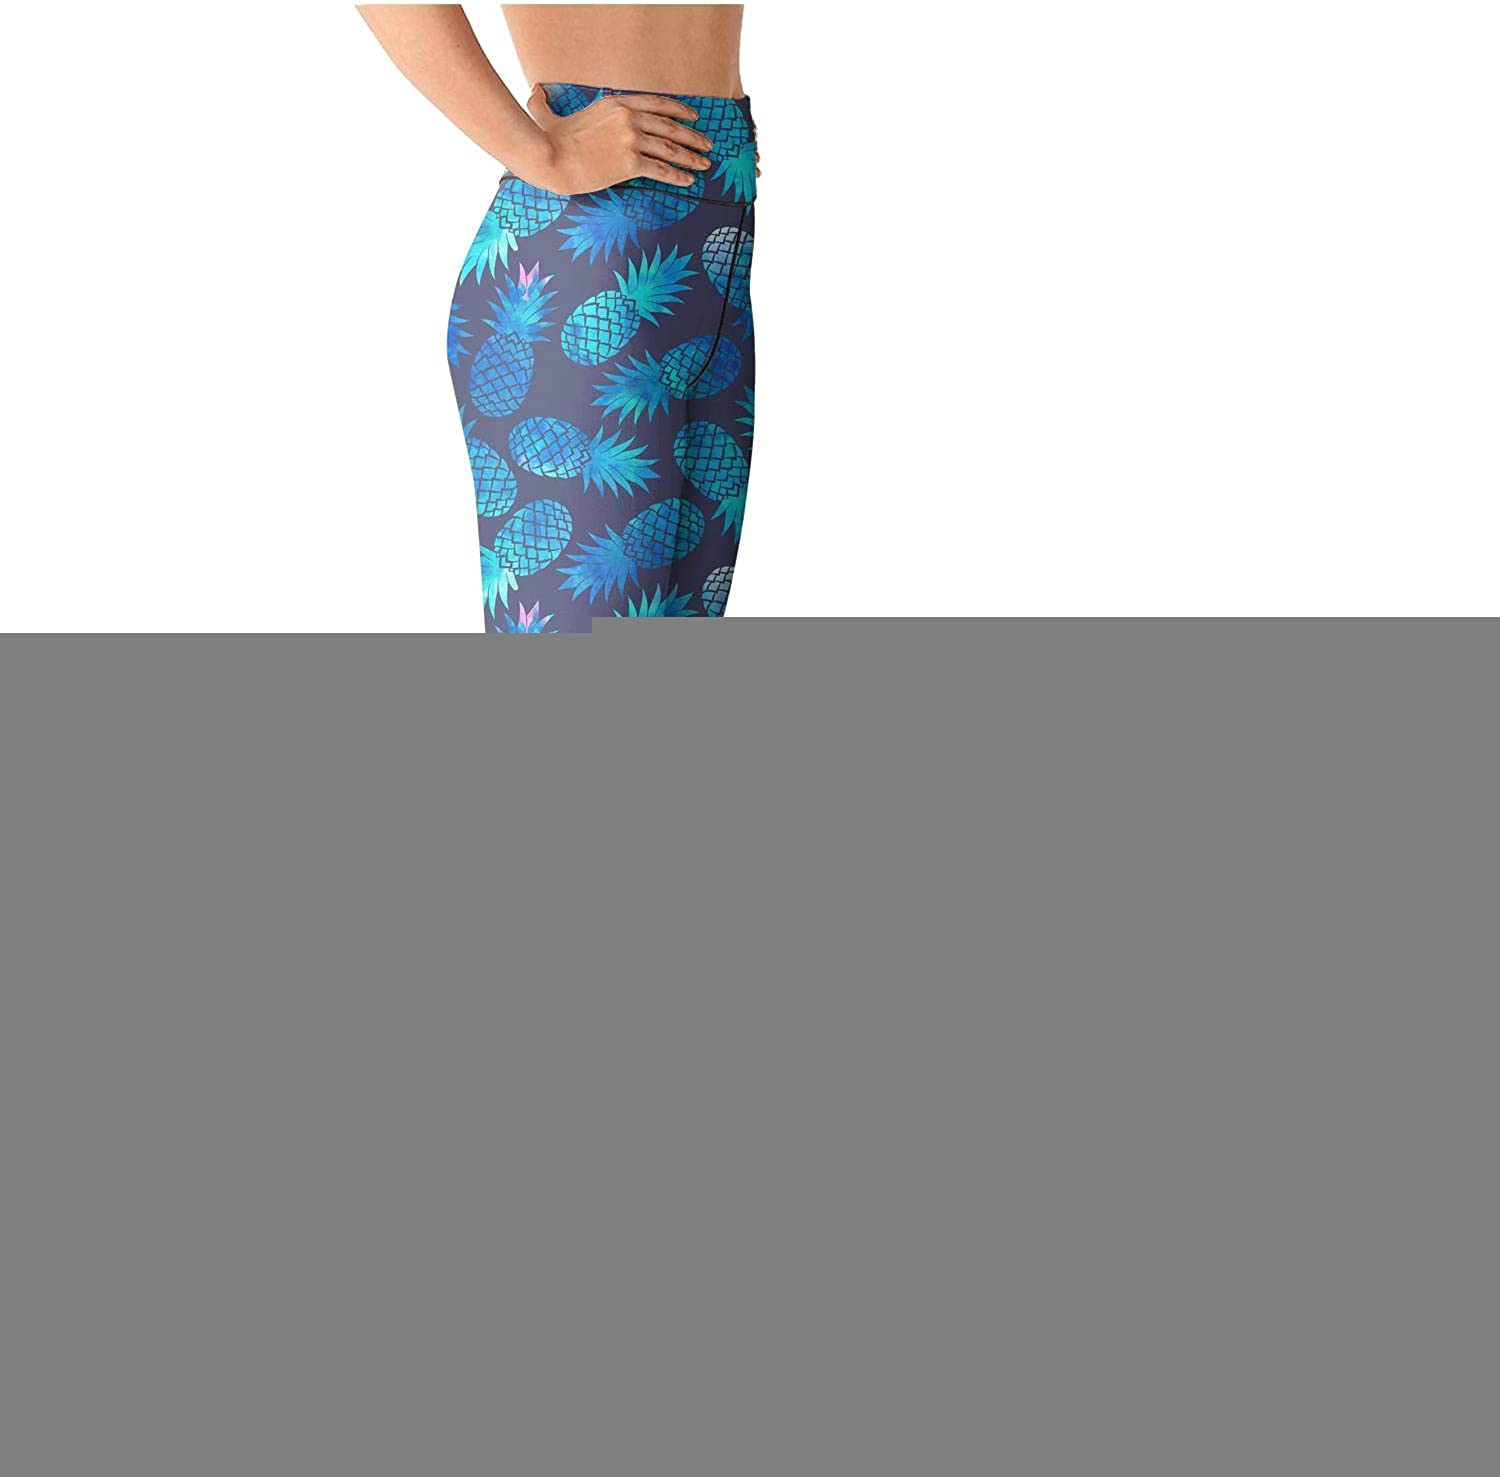 Leggins high Waisted Yoga Pants Training Athletic Tights Leggings Stretch Retro Comfort Pink and Blue Pineapple Purple